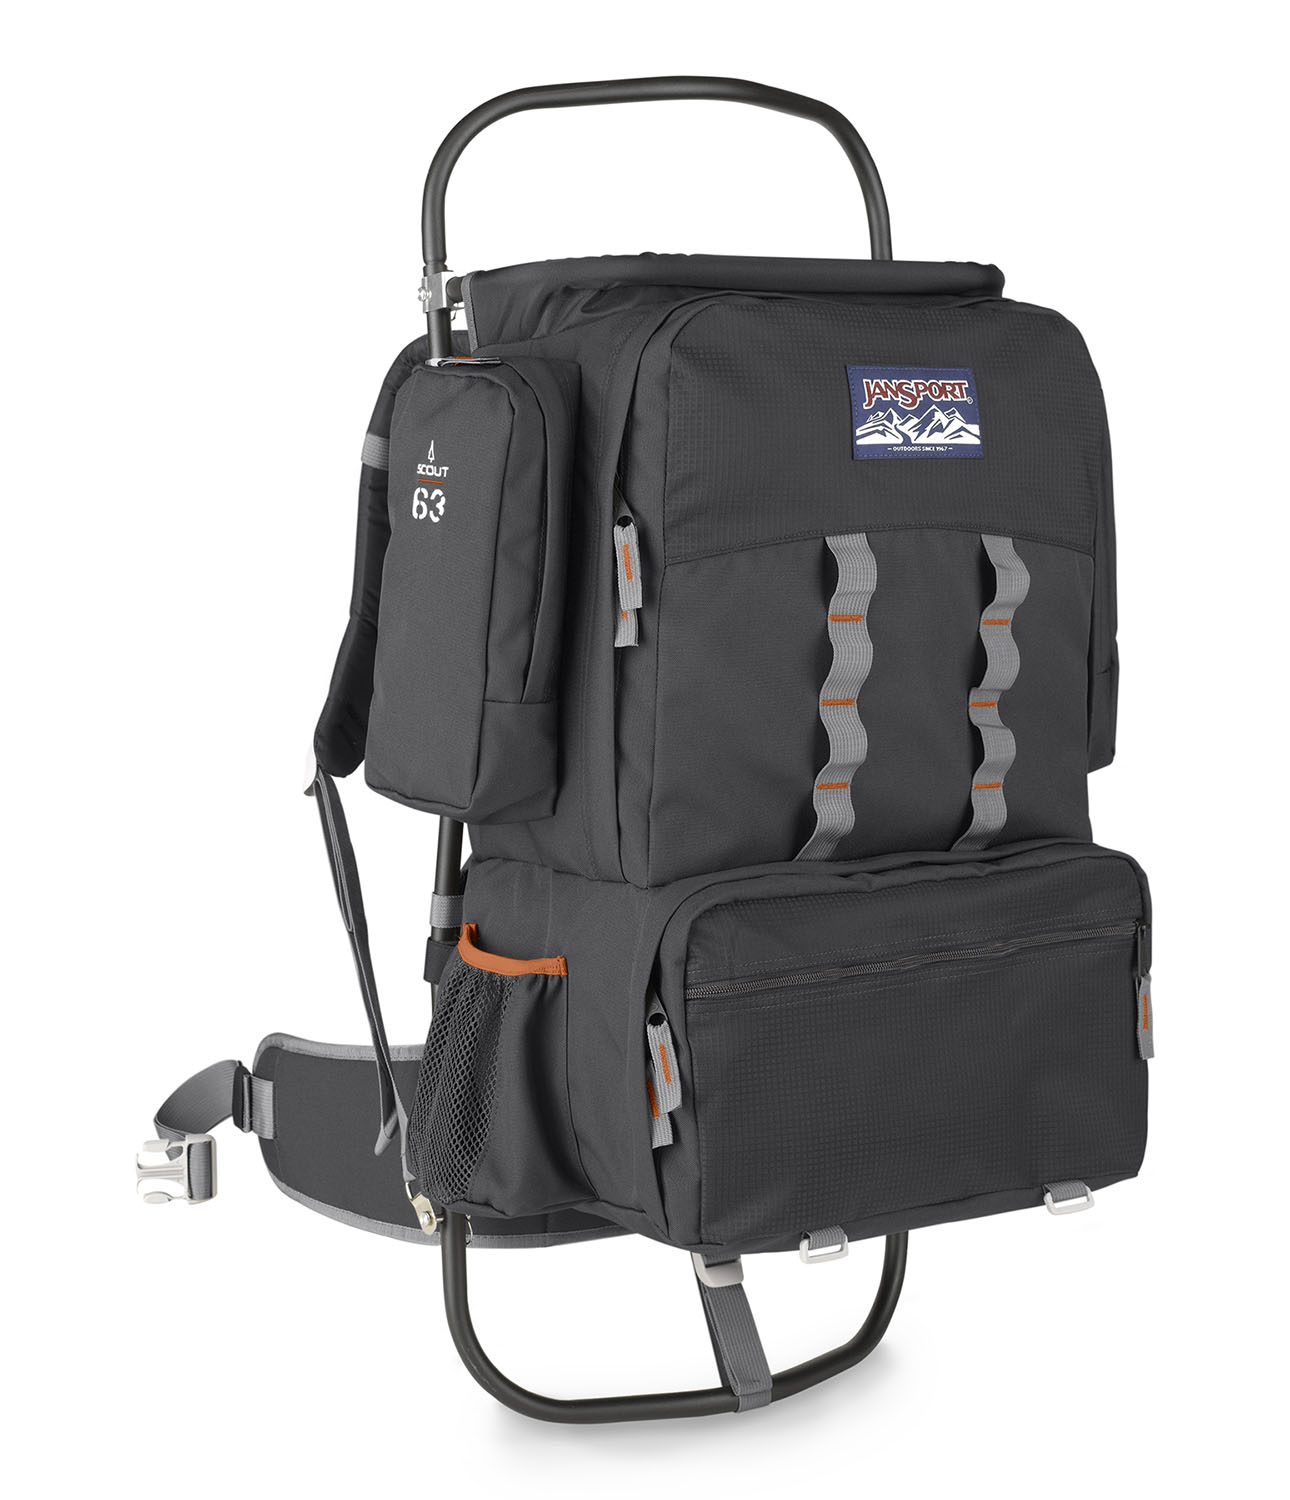 Jansport Scout Backpack Review